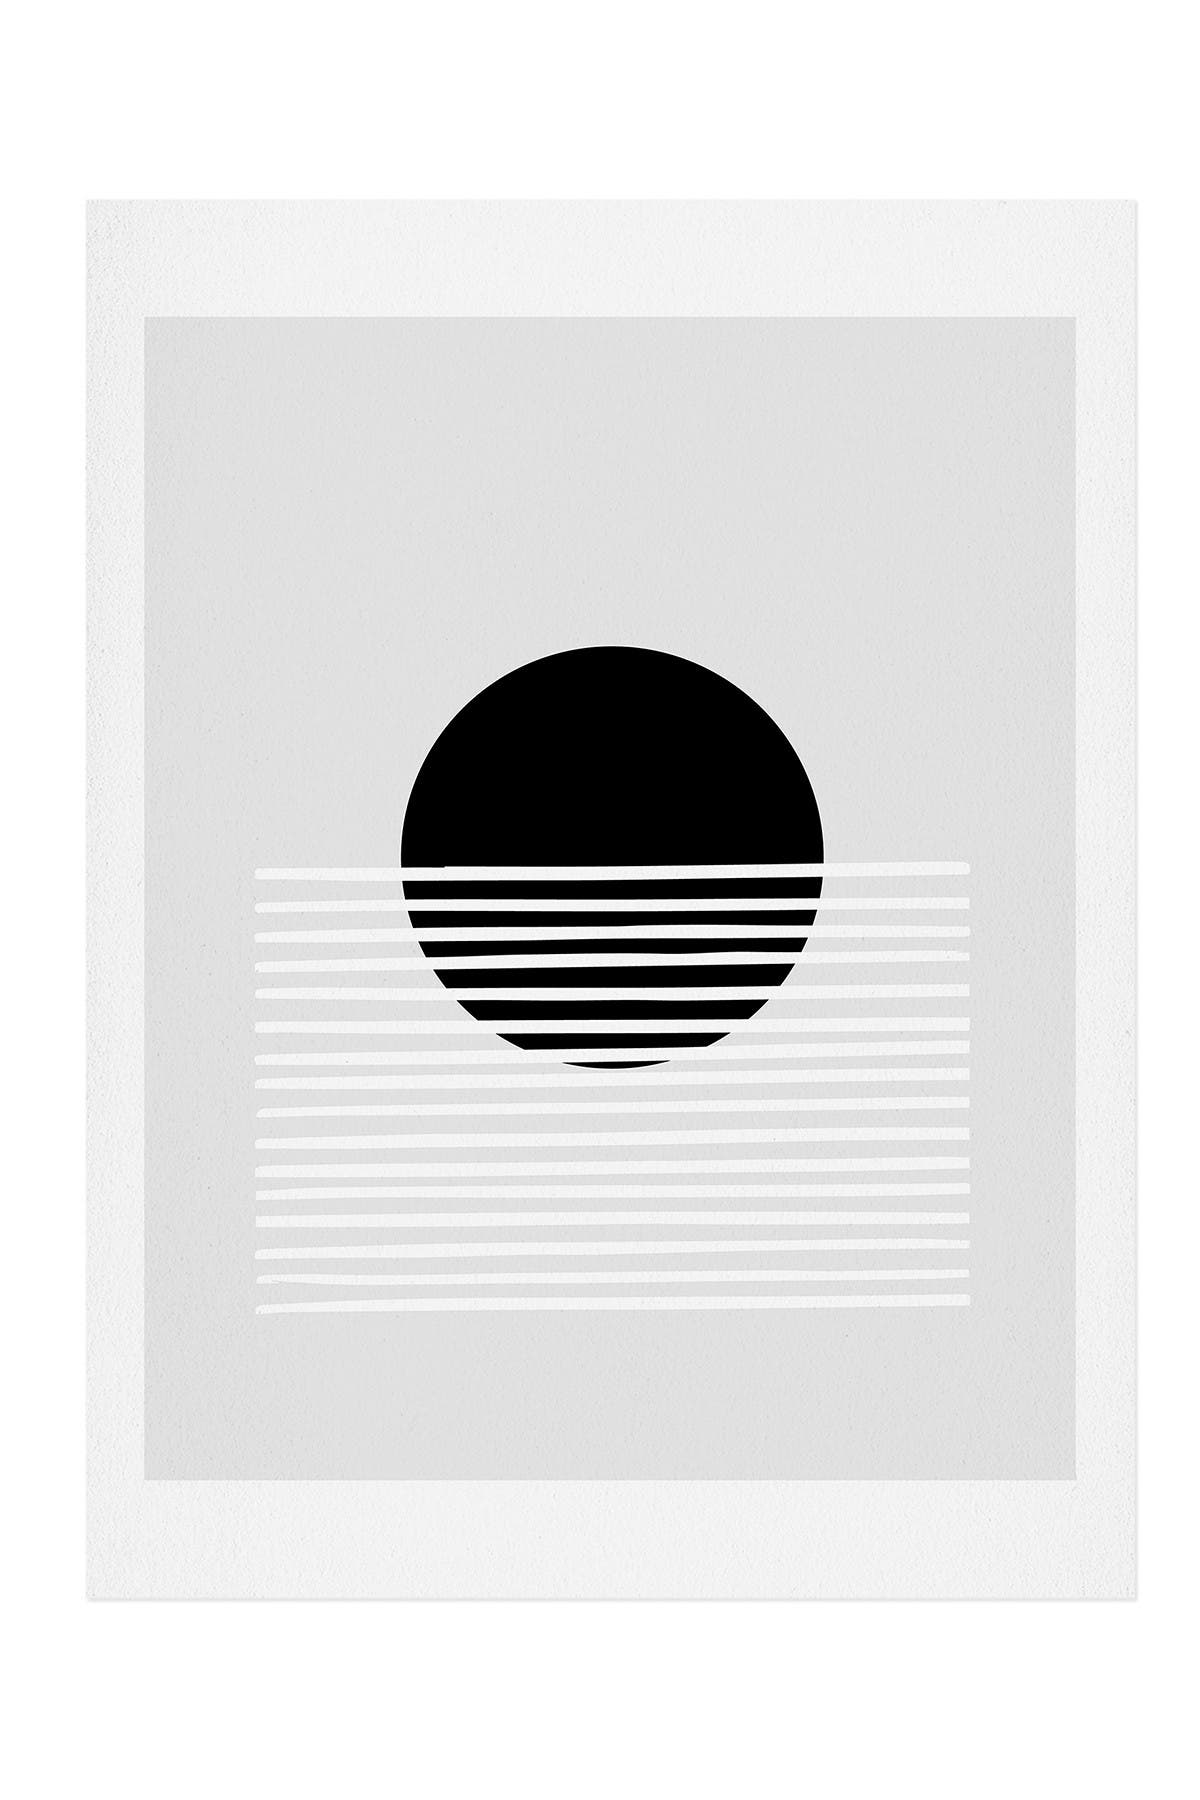 Image of Deny Designs Mambo Art Studio Sunset Monochrome Art Print